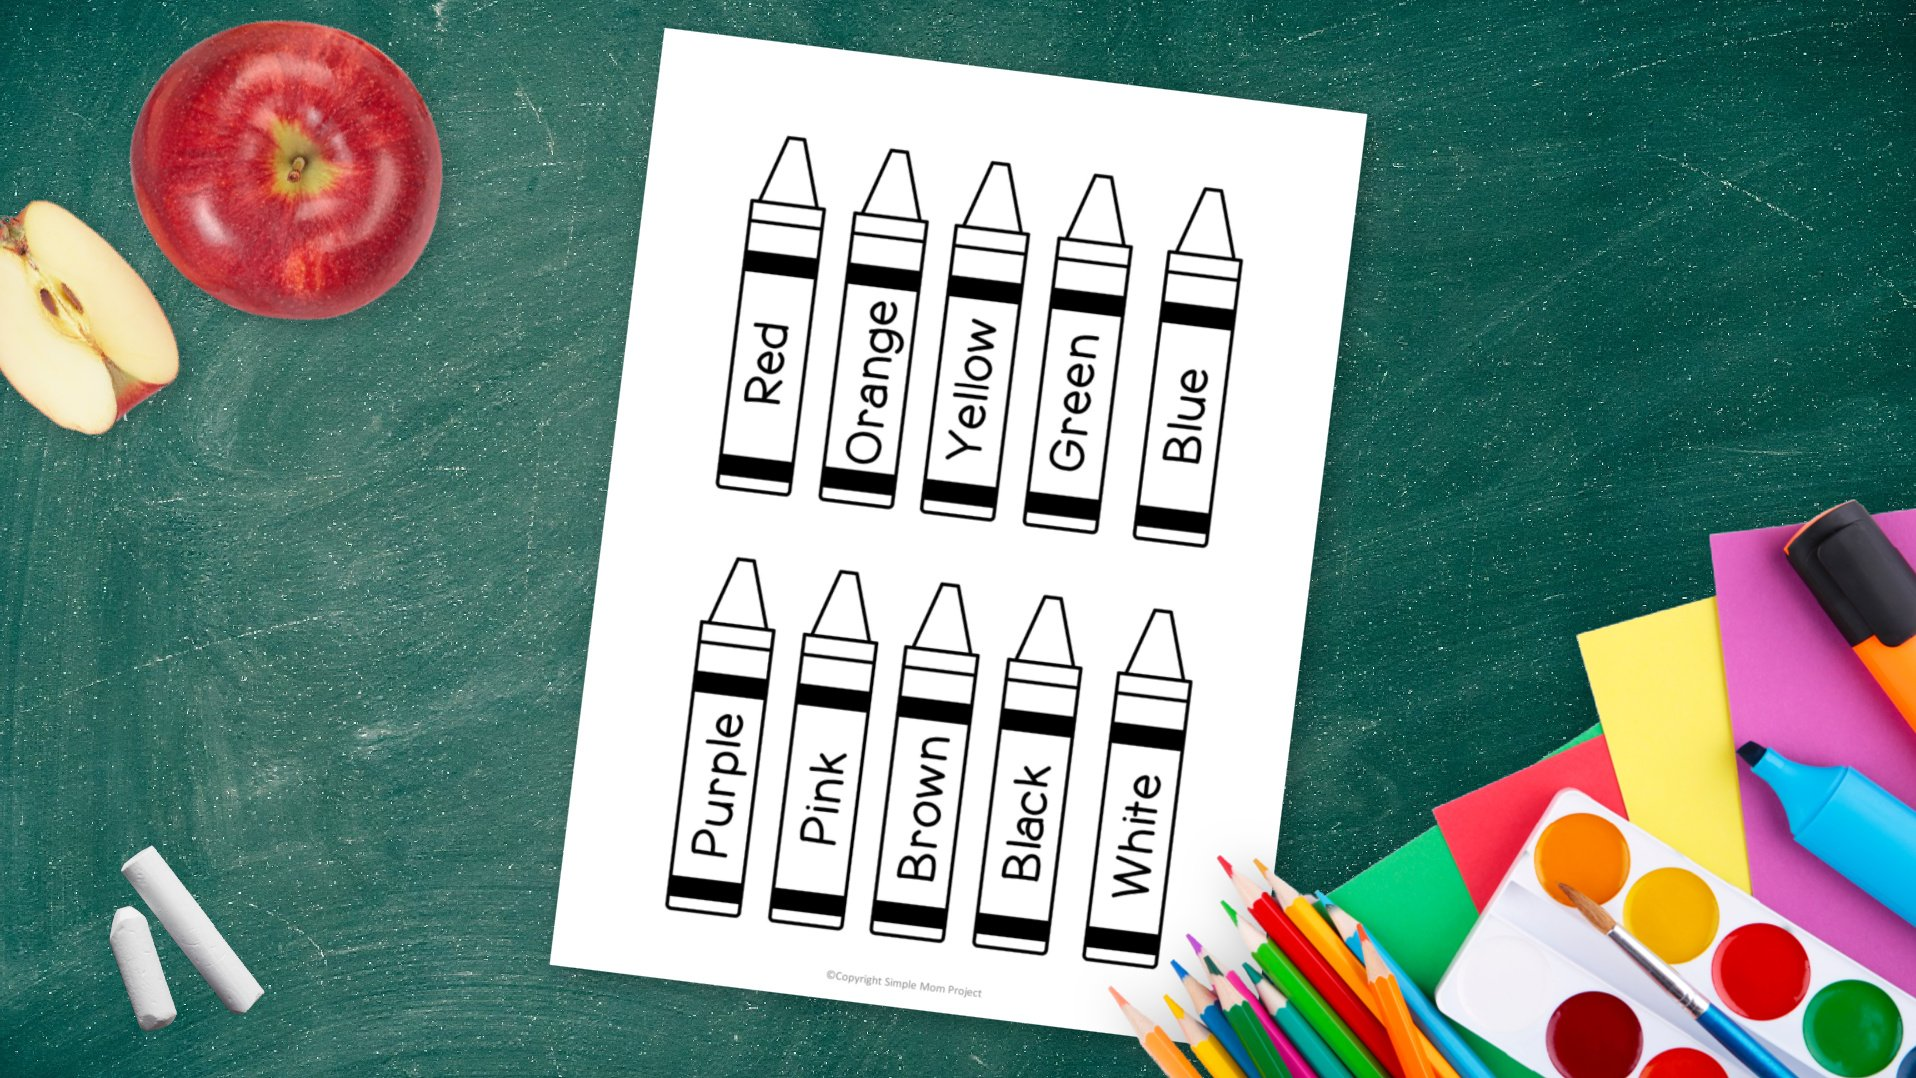 Free printable crayons template for kids preschoolers and toddlers